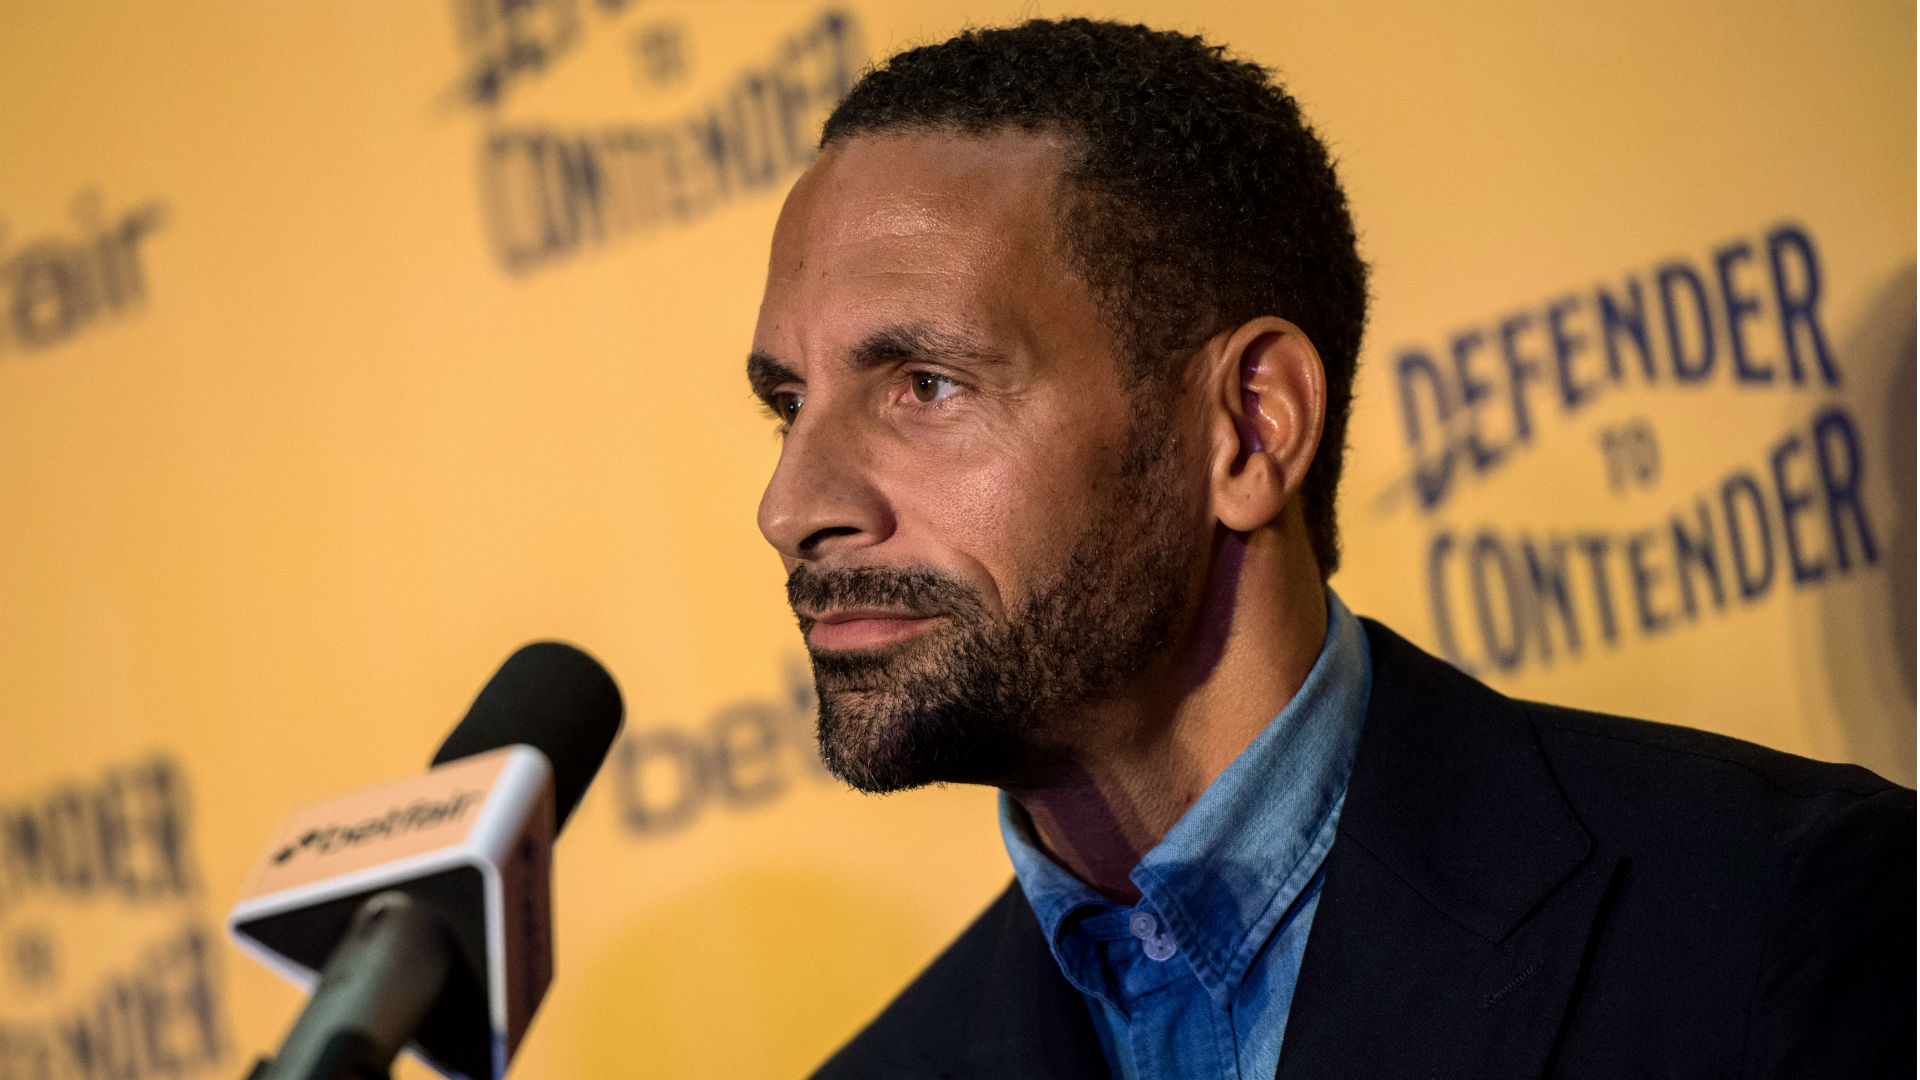 Rio Ferdinand claims he's spoken to Man United about sporting director role